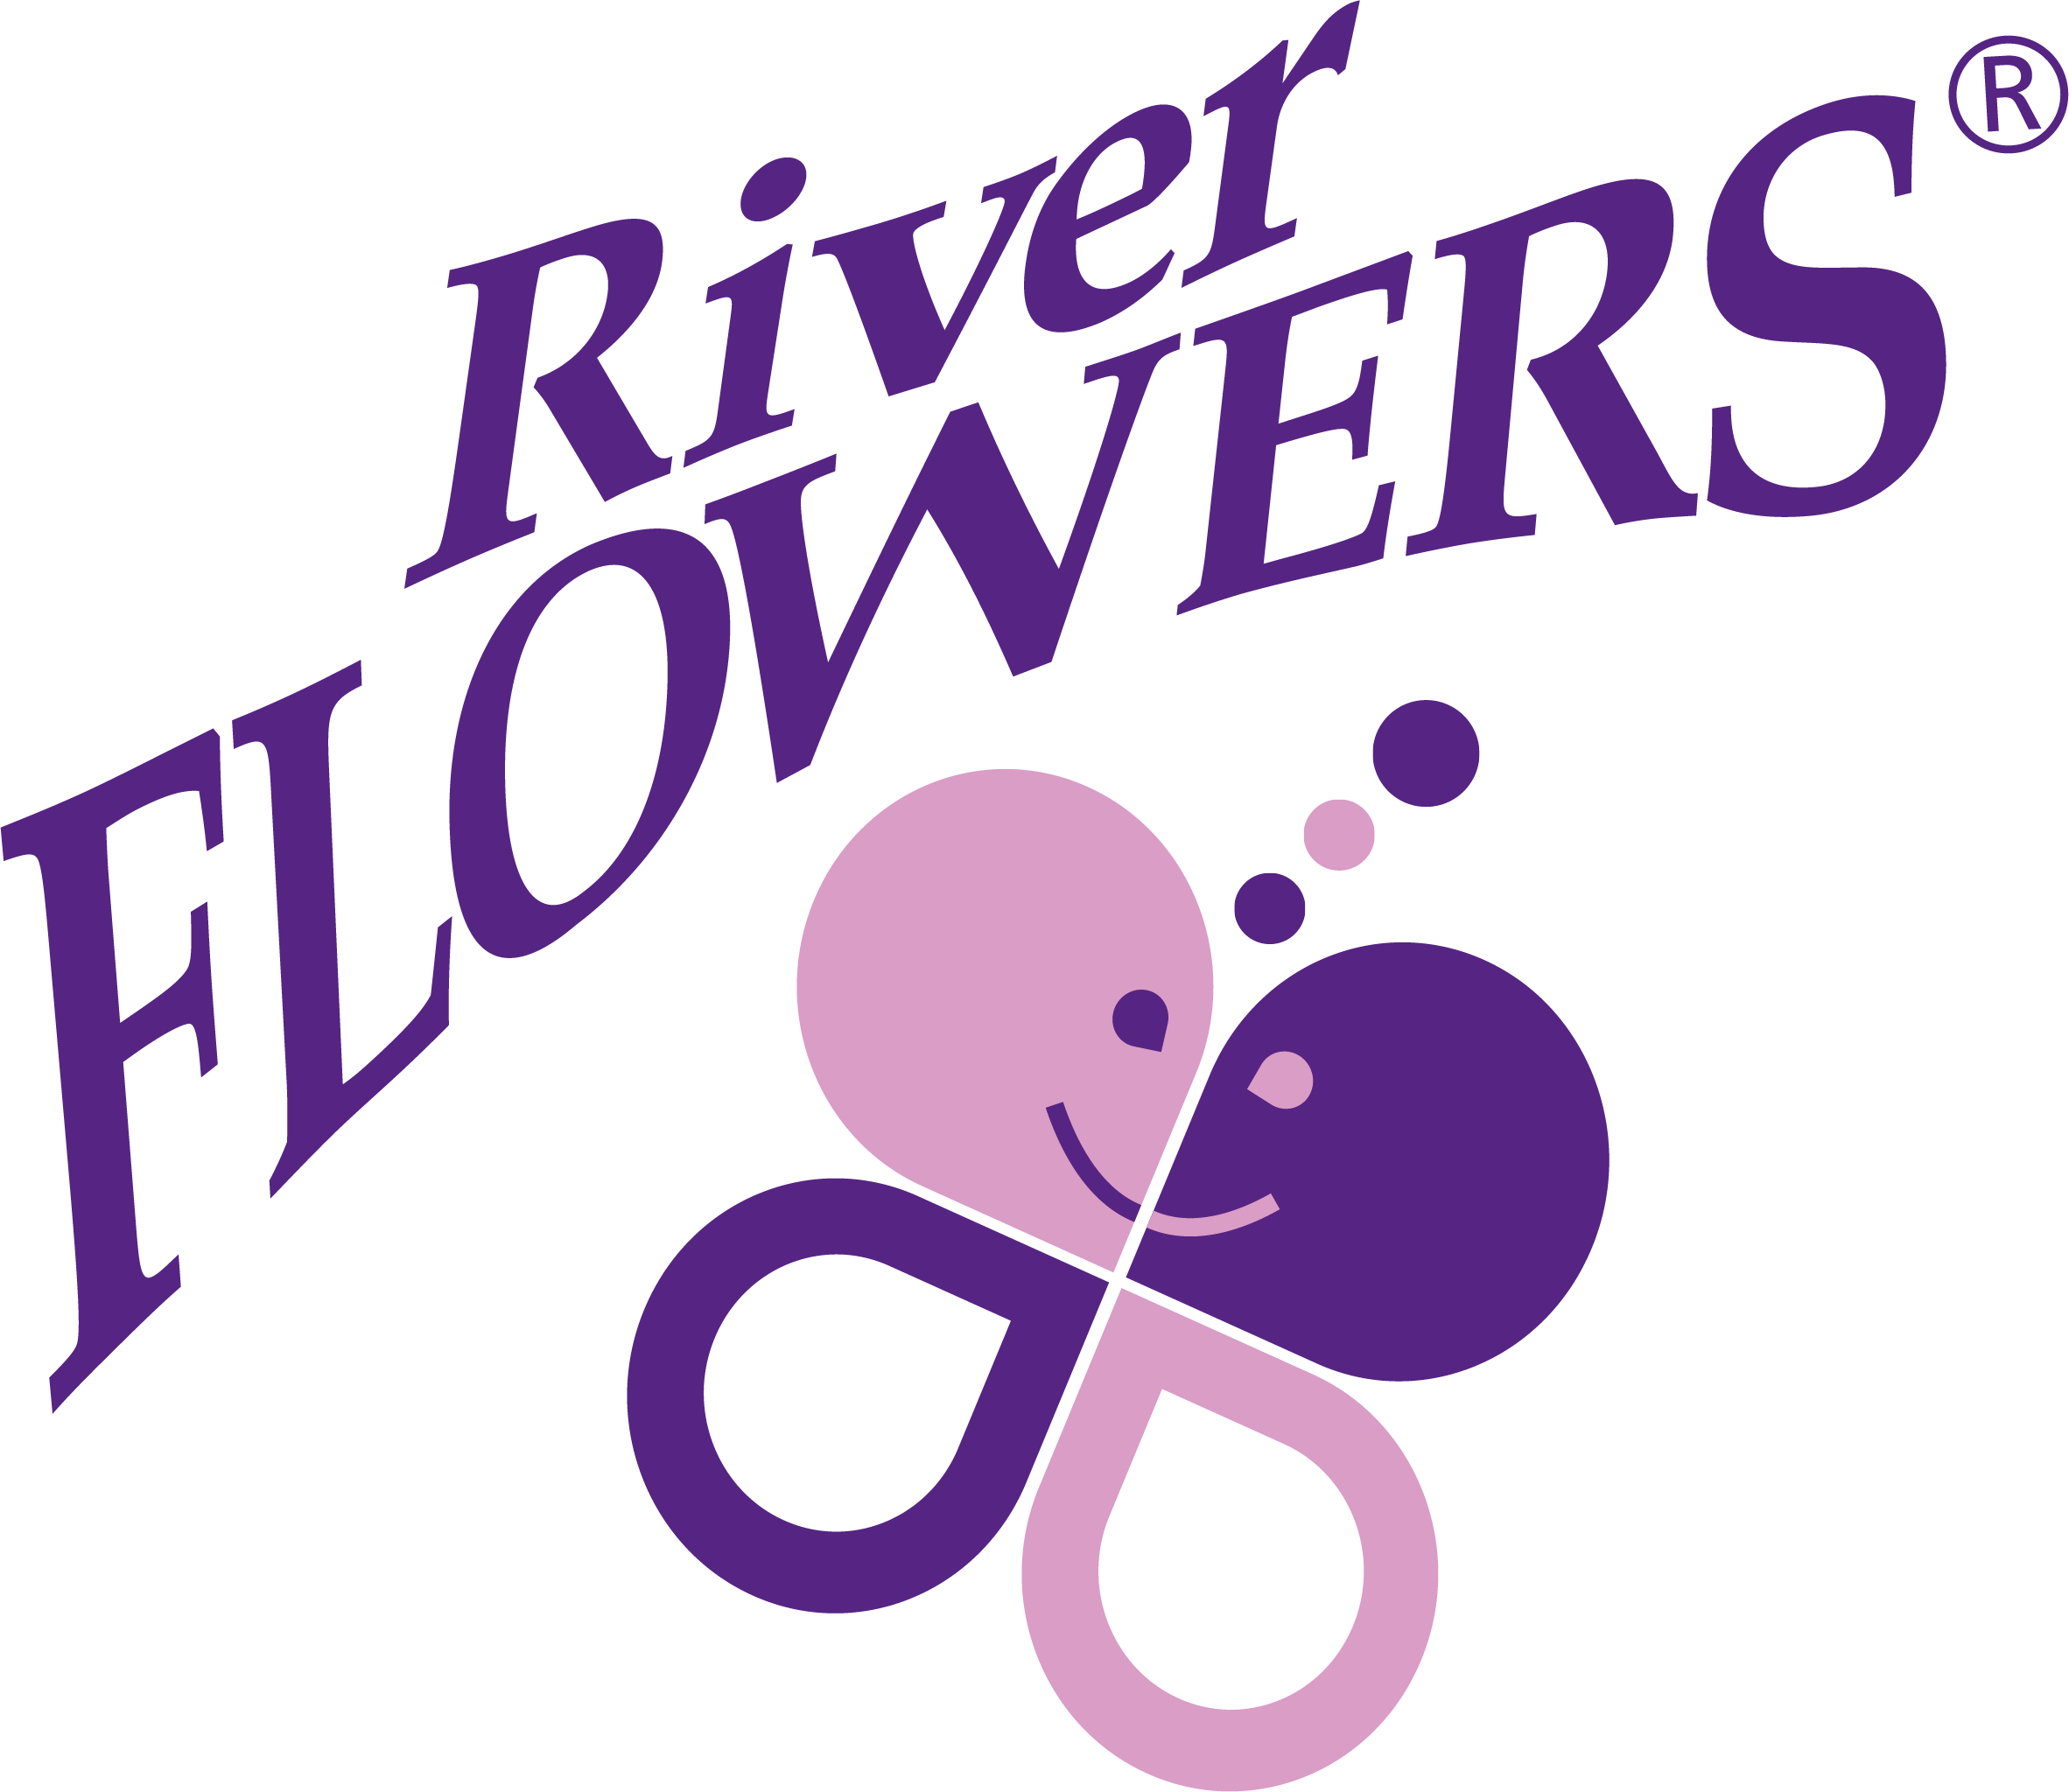 Riverflowers